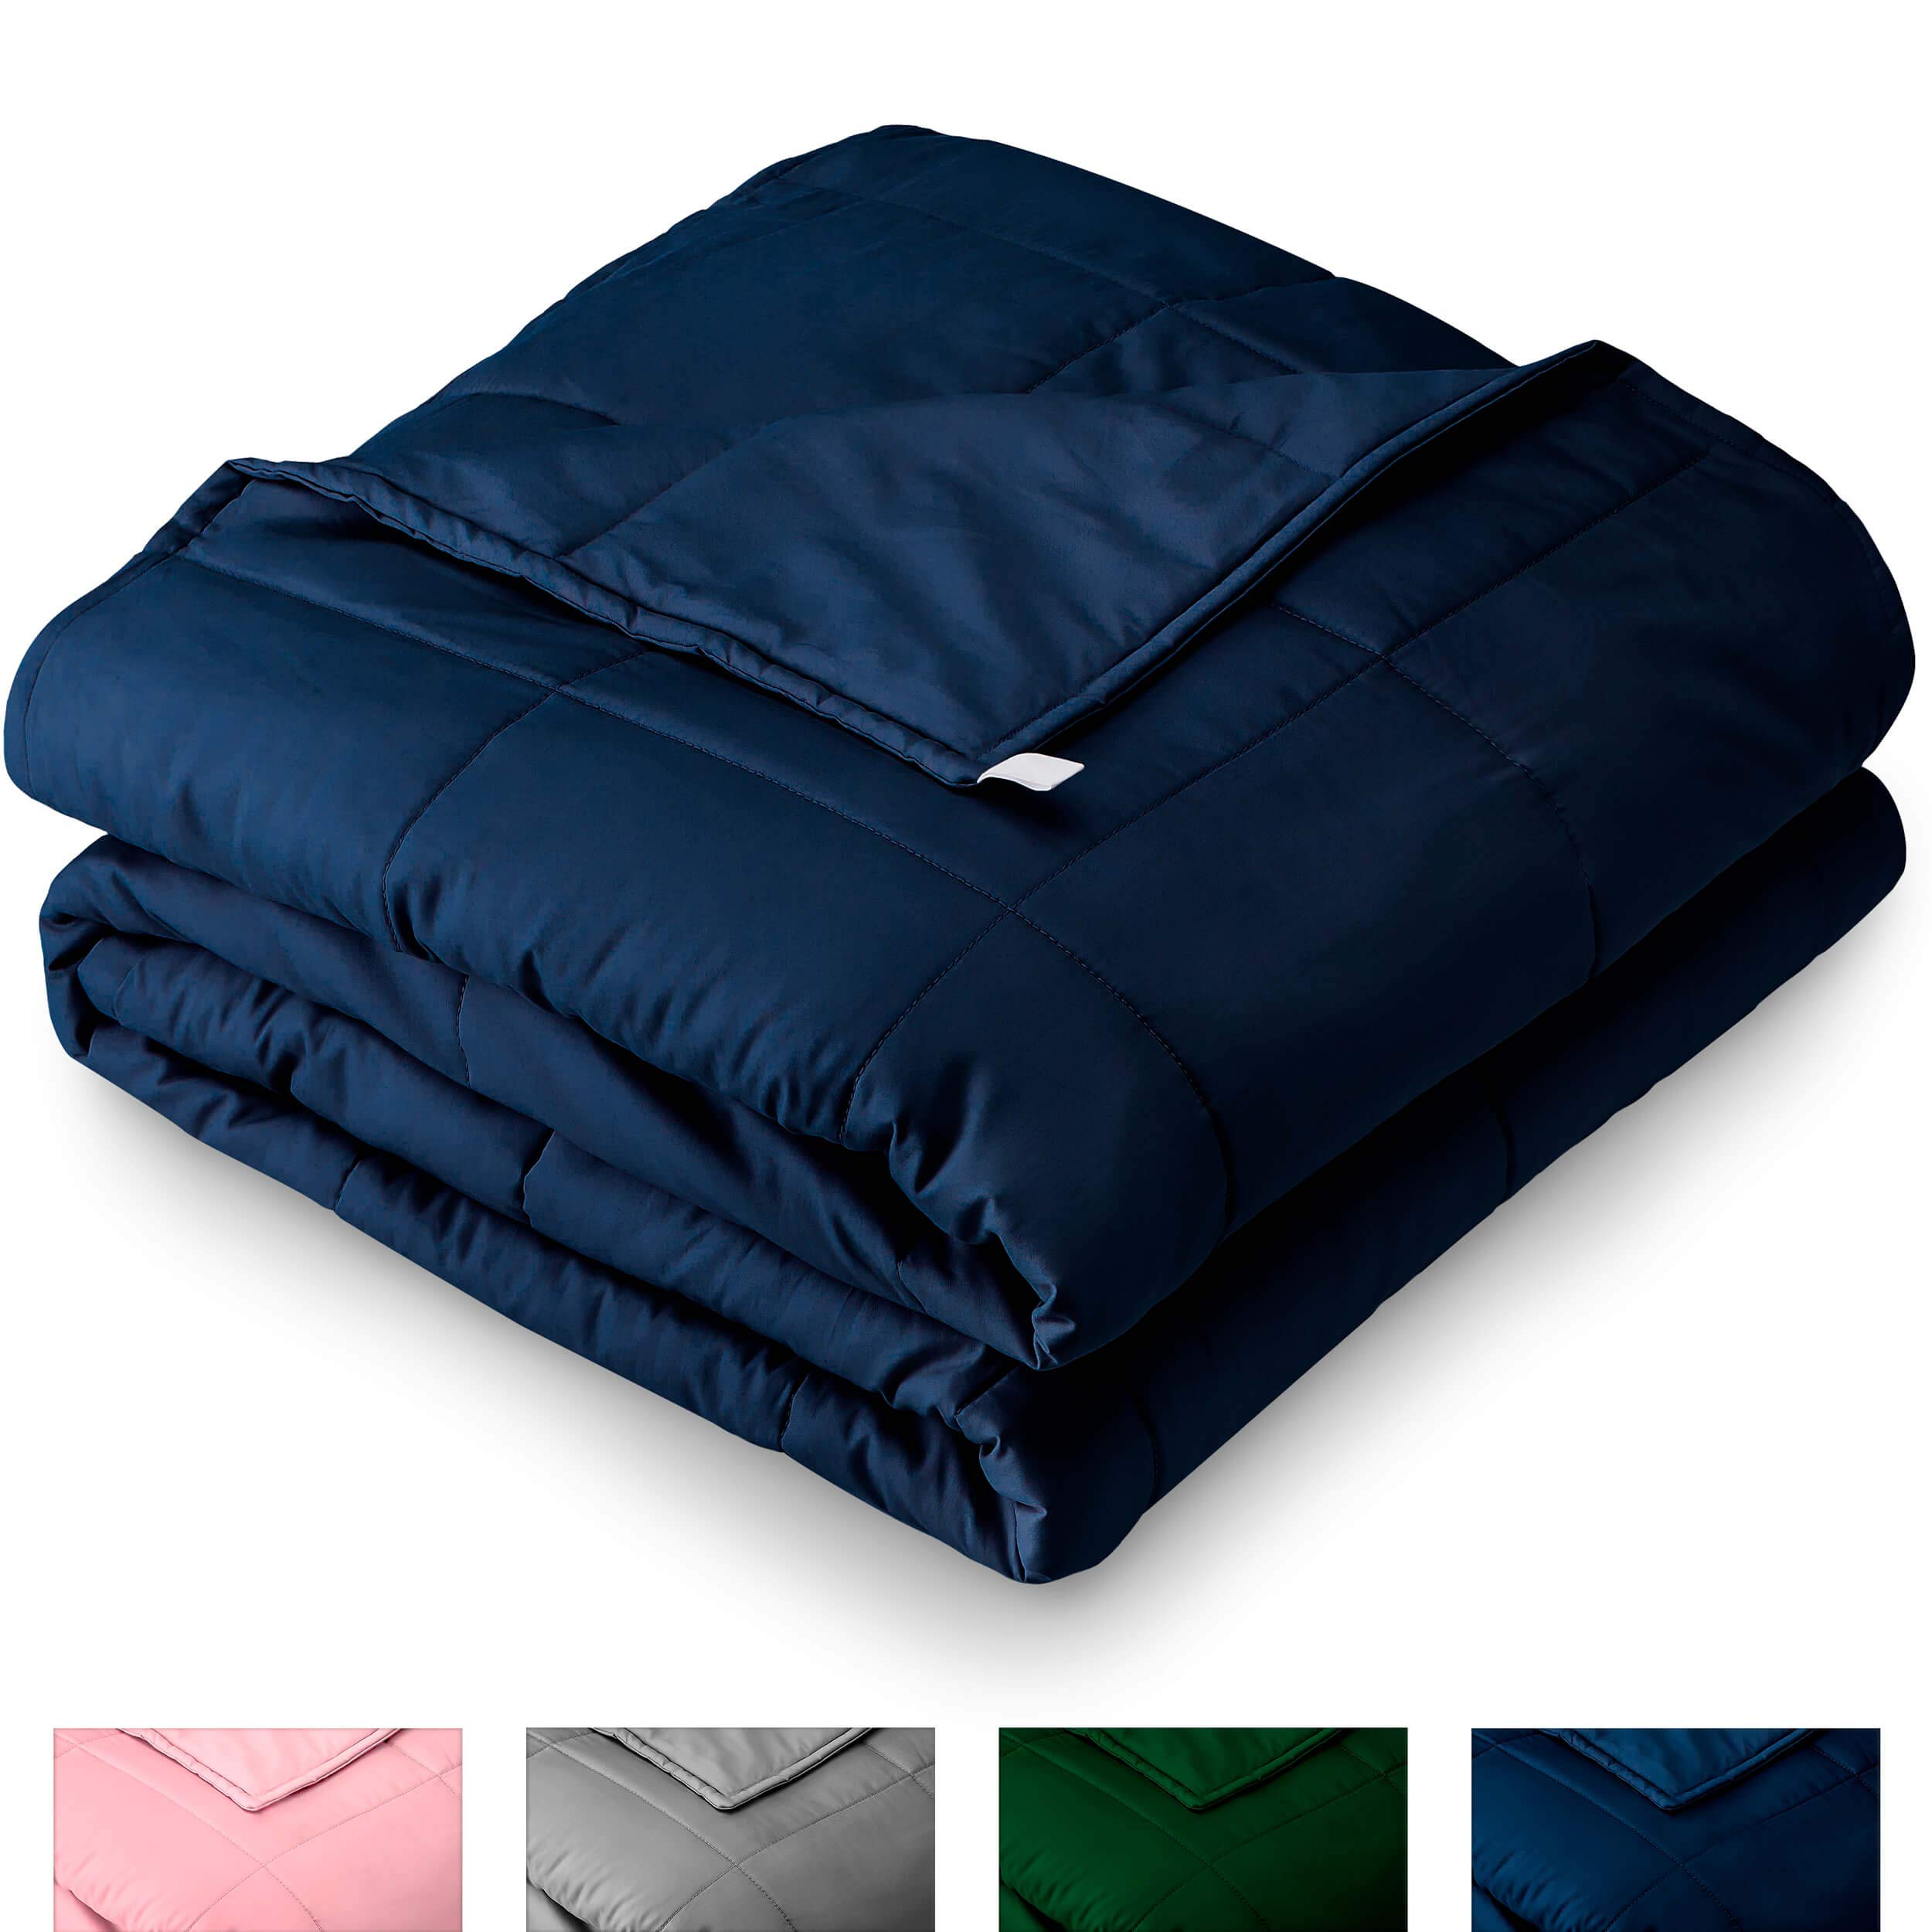 Bare Home Weighted Blanket for Adults 25lb (80'' x 87'') - Oversize - All-Natural 100% Cotton - Premium Heavy Blanket Nontoxic Glass Beads (Dark Blue, 80''x87'') by Bare Home